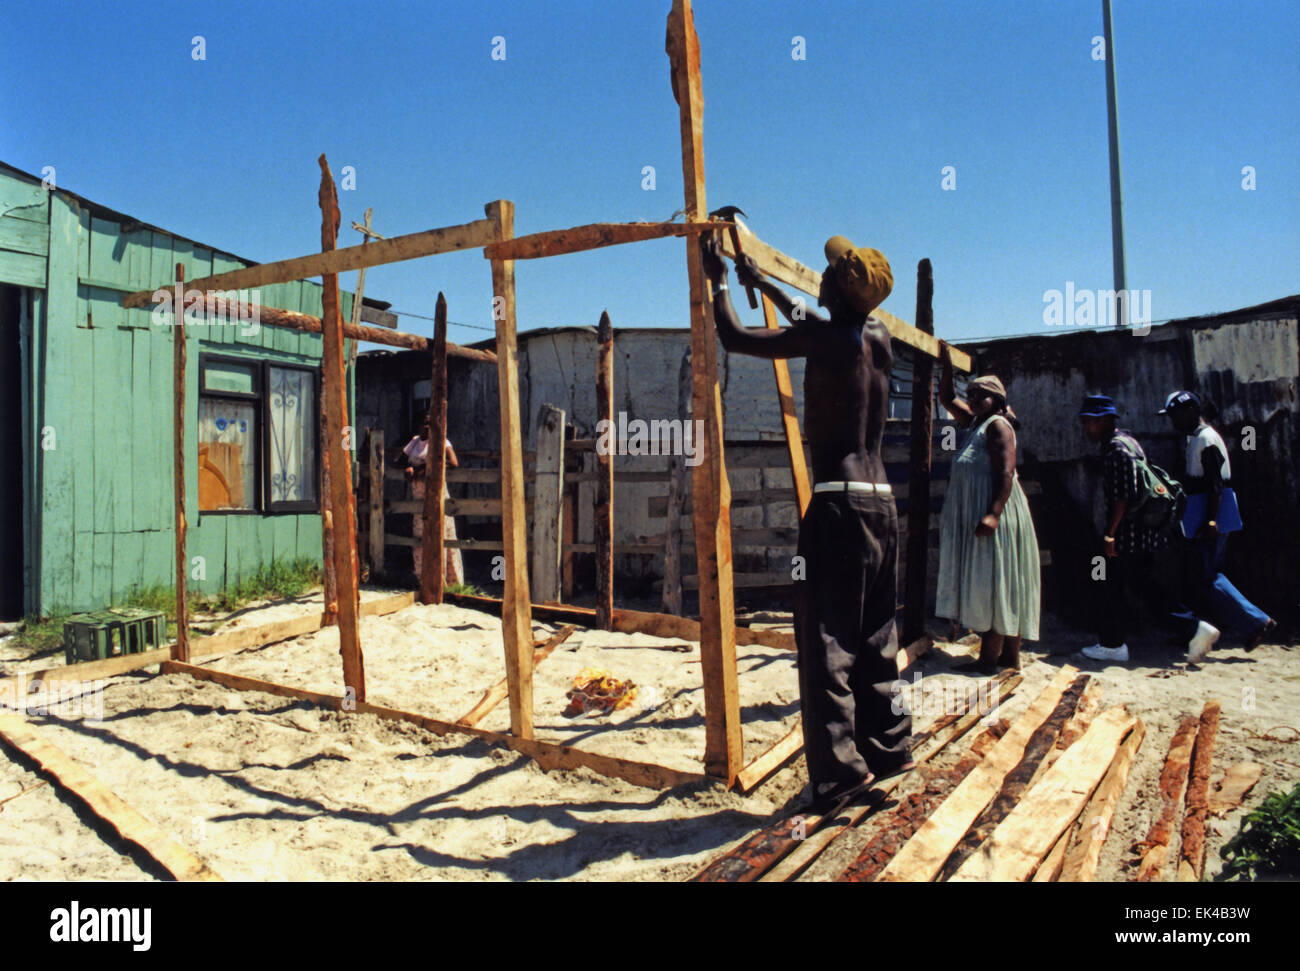 A man and a woman build a shack in Khayelitsha, Cape Town late 1990's - Stock Image